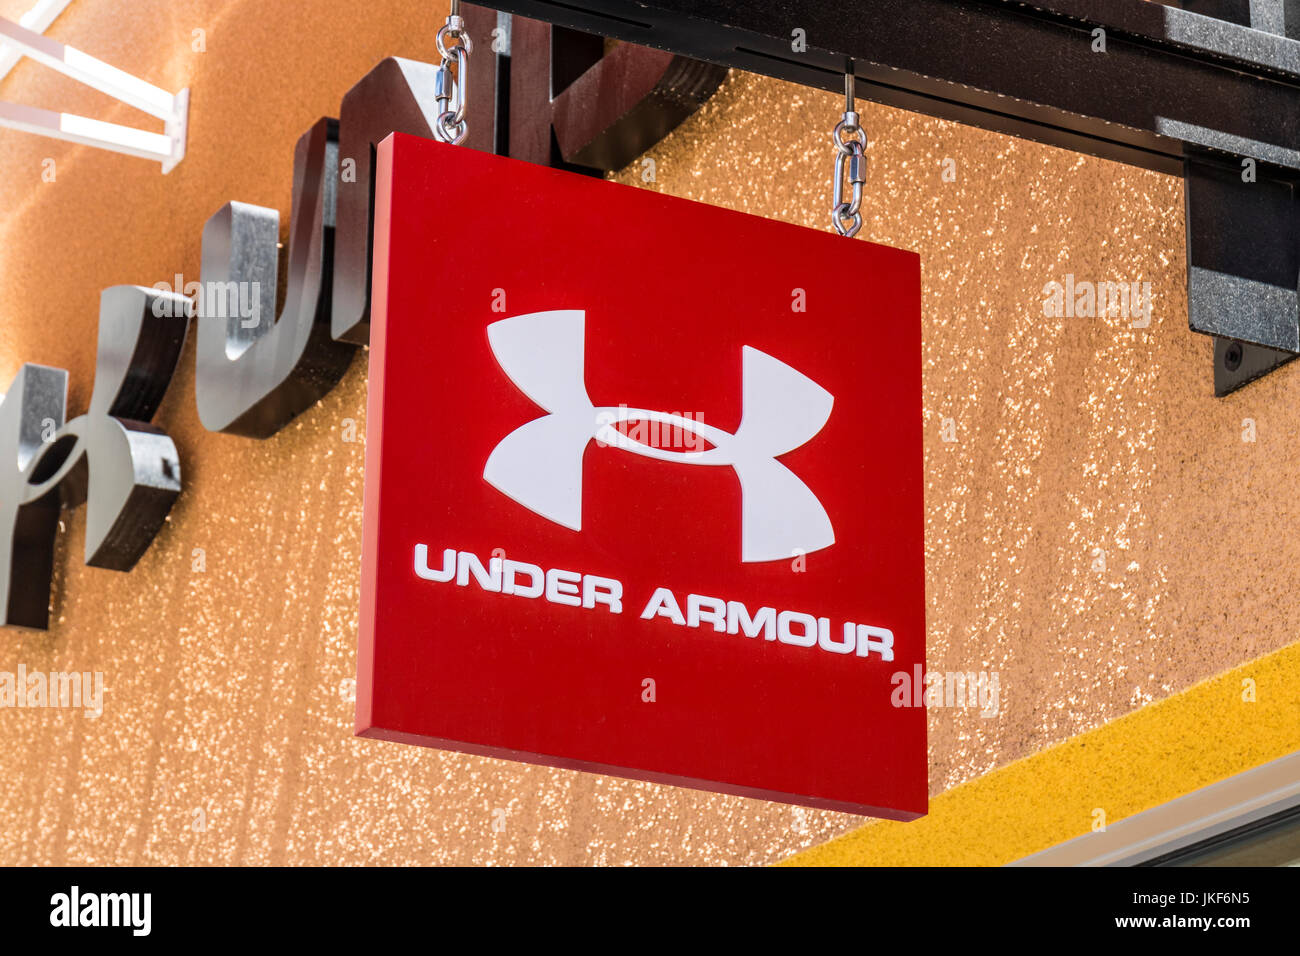 where does under armour manufacture their products